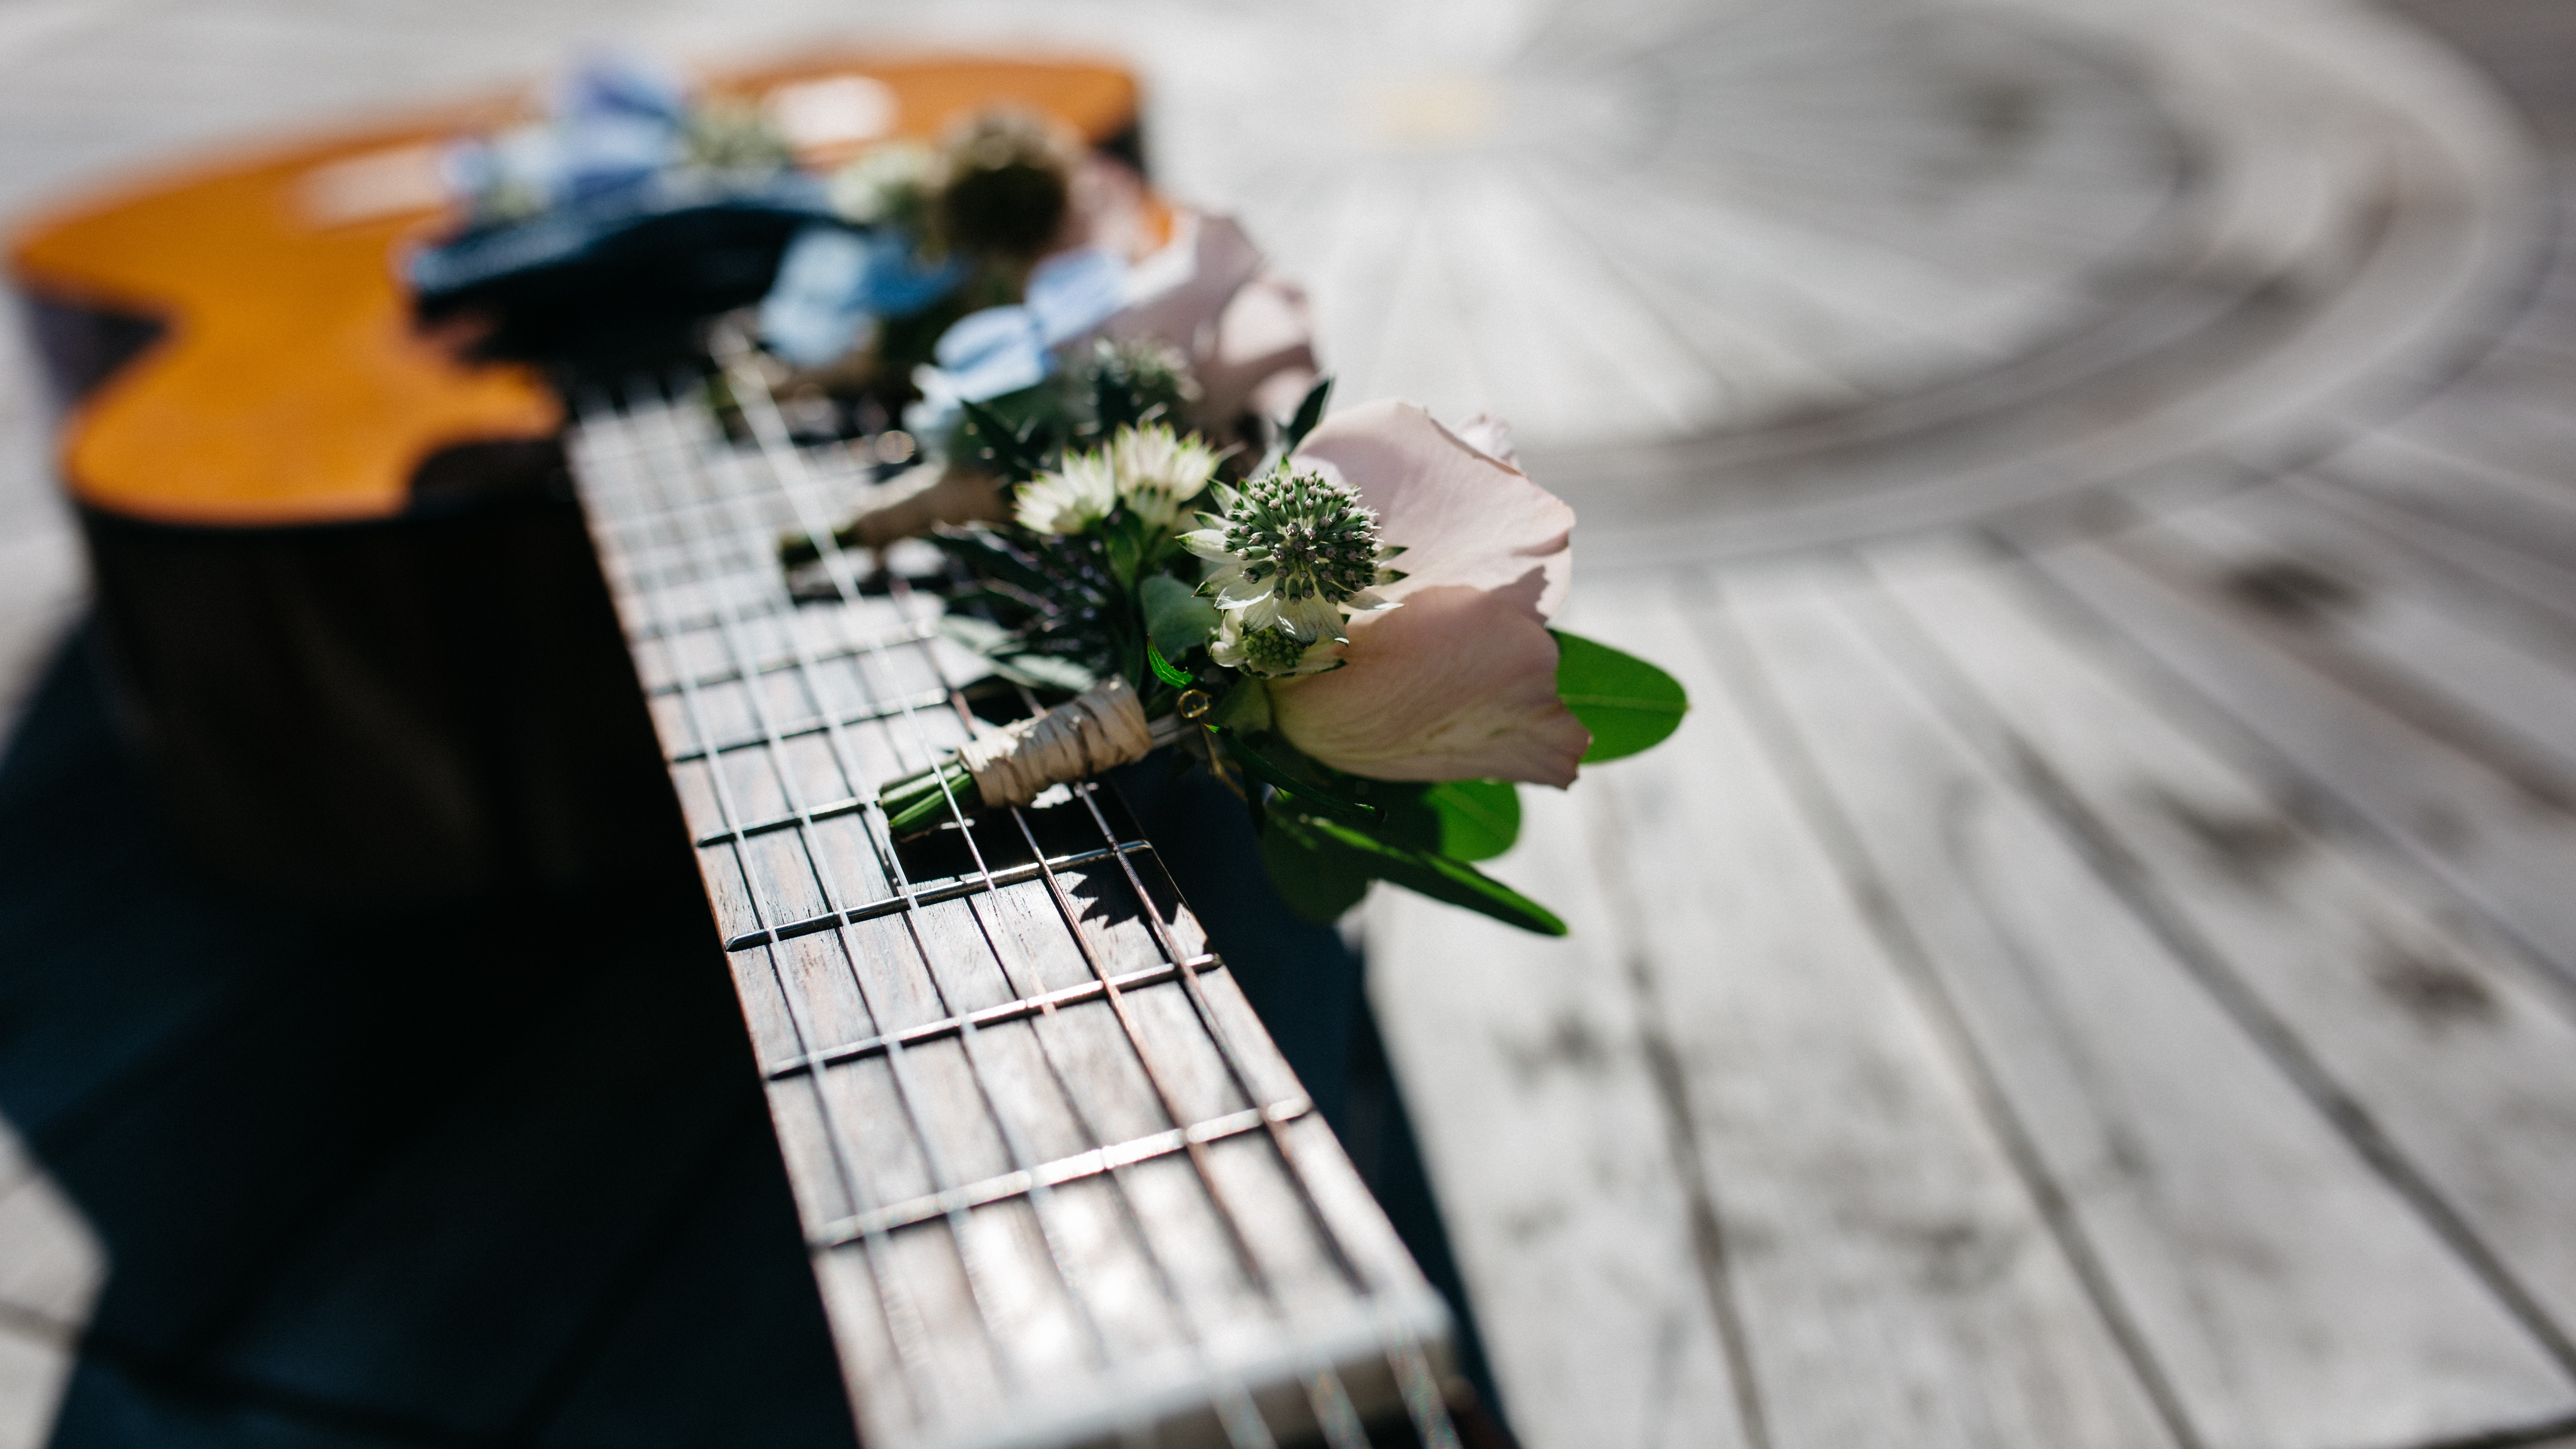 A six-stringed accoustic guitar with miniature bouquets of pale pink roses and little white flowers tucked between the strings and the neck of the instrument. Blue ribbon can be seen further along, presumably wrapped around one or more bouquets by or inside the guitar's cavity.